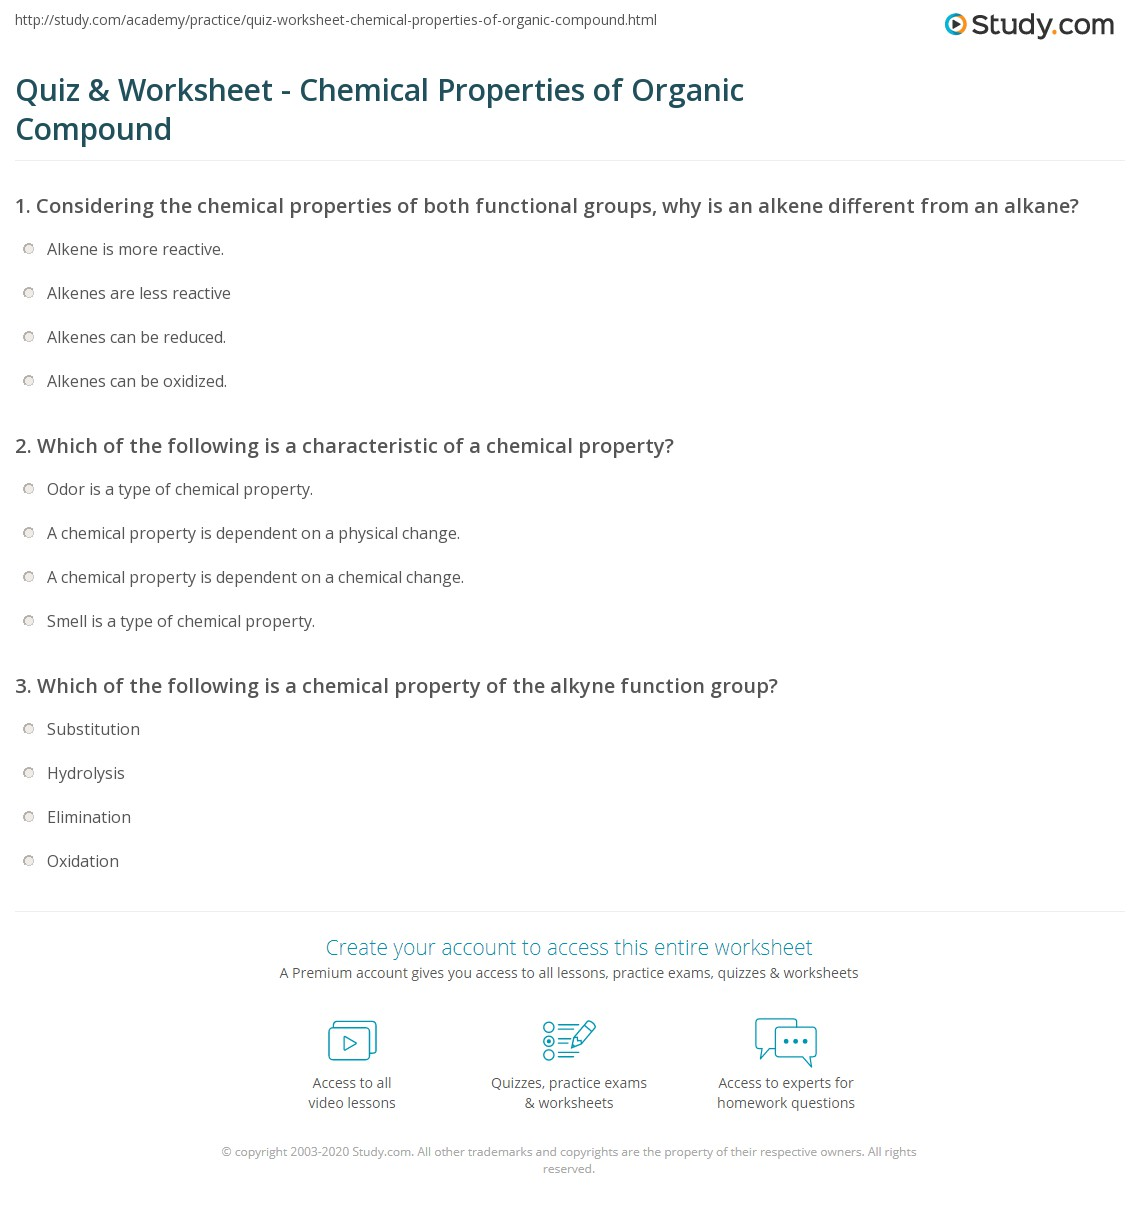 Quiz & Worksheet - Chemical Properties of Organic Compound